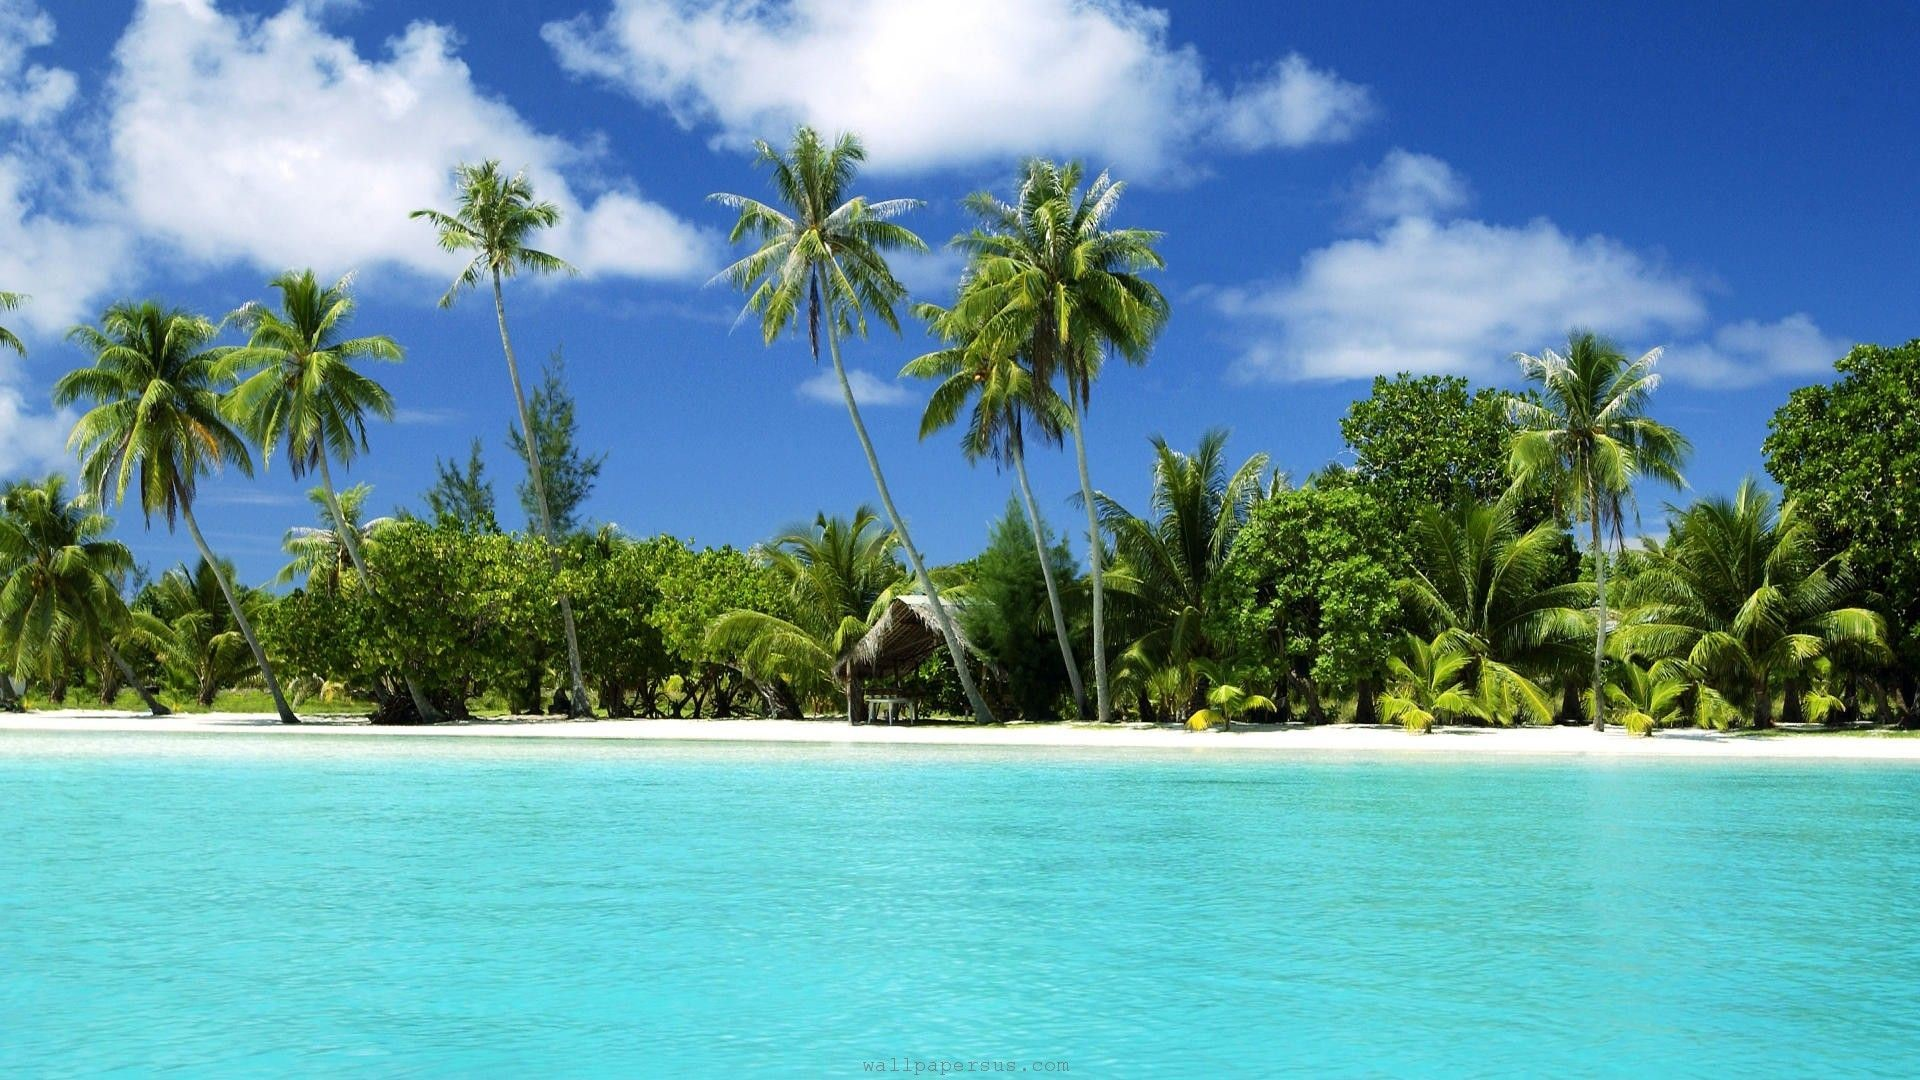 Tropical Beach Landscape Pictures